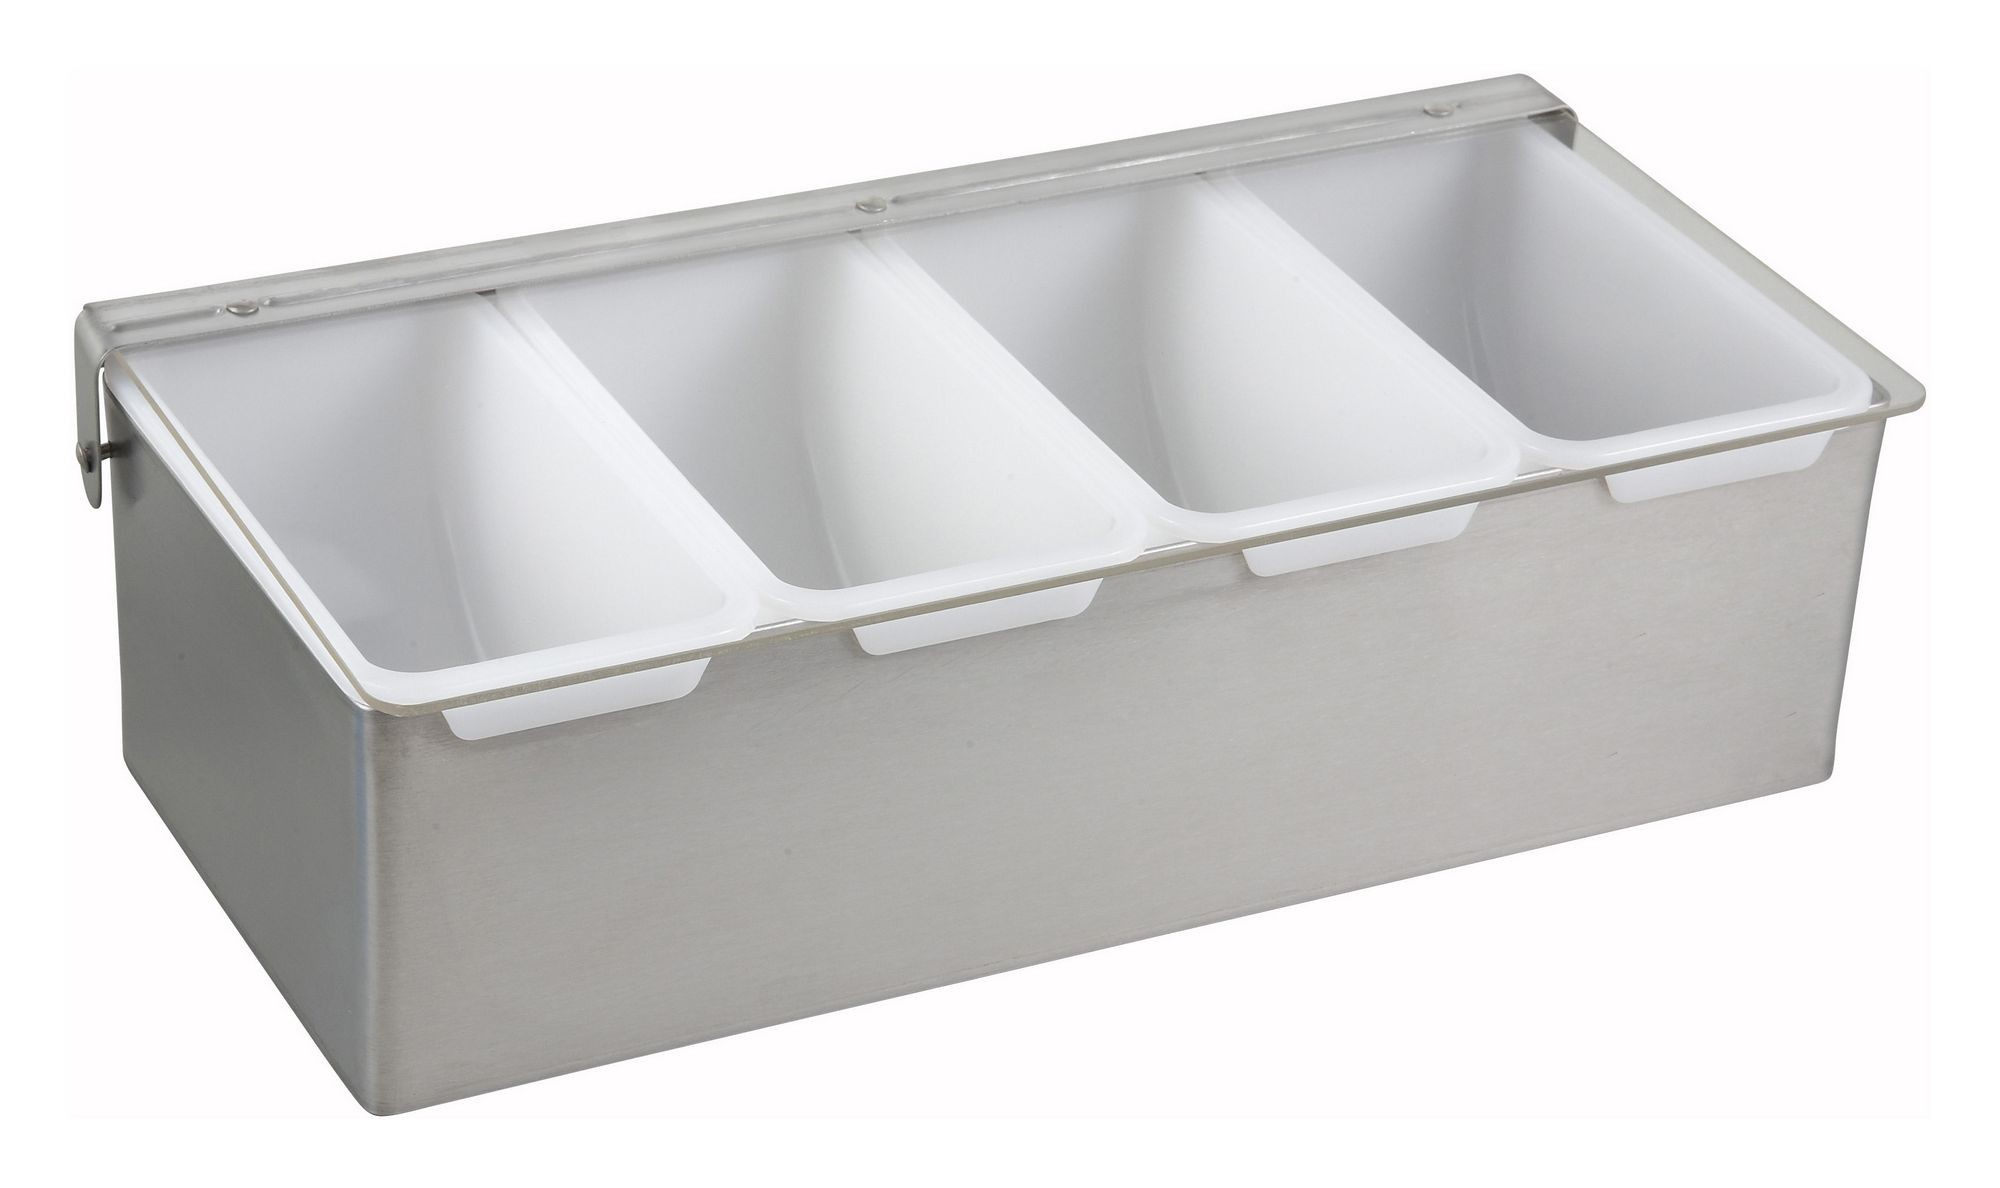 Winco CDP-4 Stainless Steel 4-Compartment Condiment Caddy